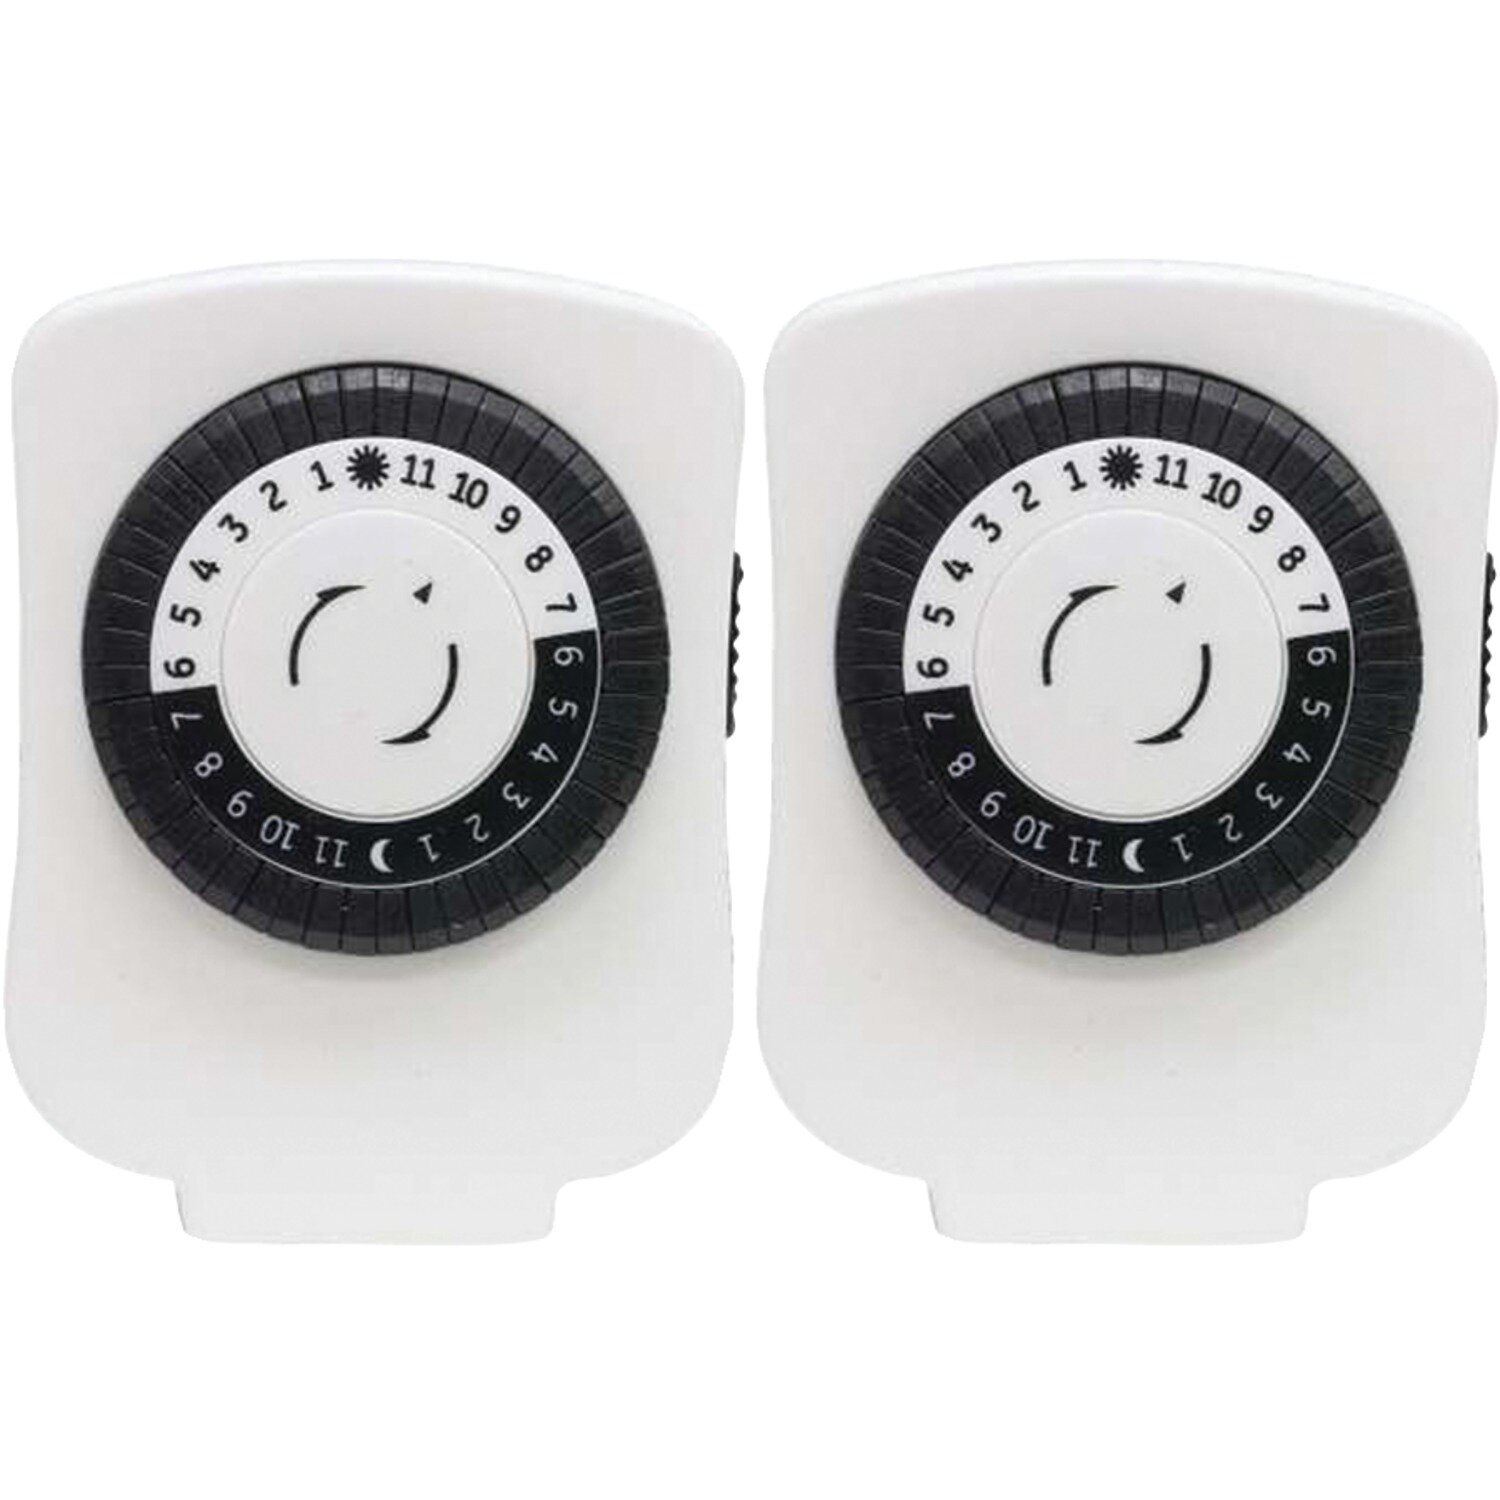 GE Polarized Plug-in Mechanical Timer Wall Mounted Outlet | Wayfair